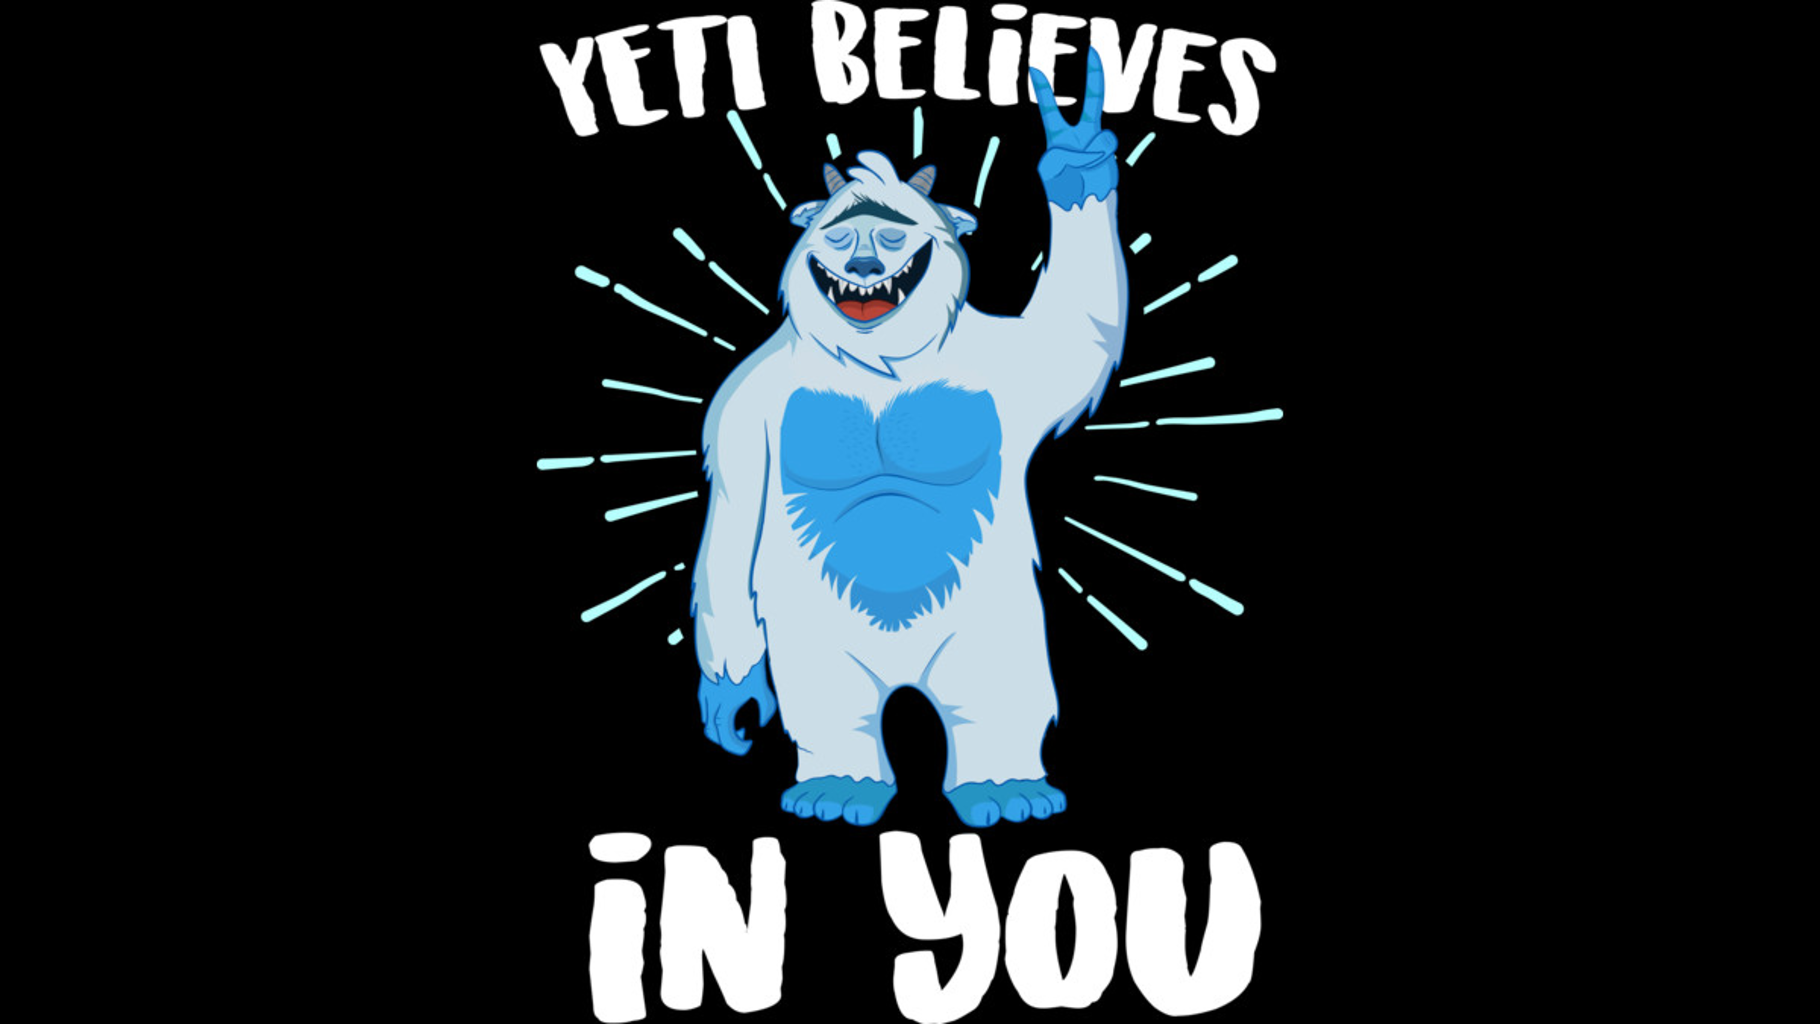 Design by Humans: Yeti Believes In You